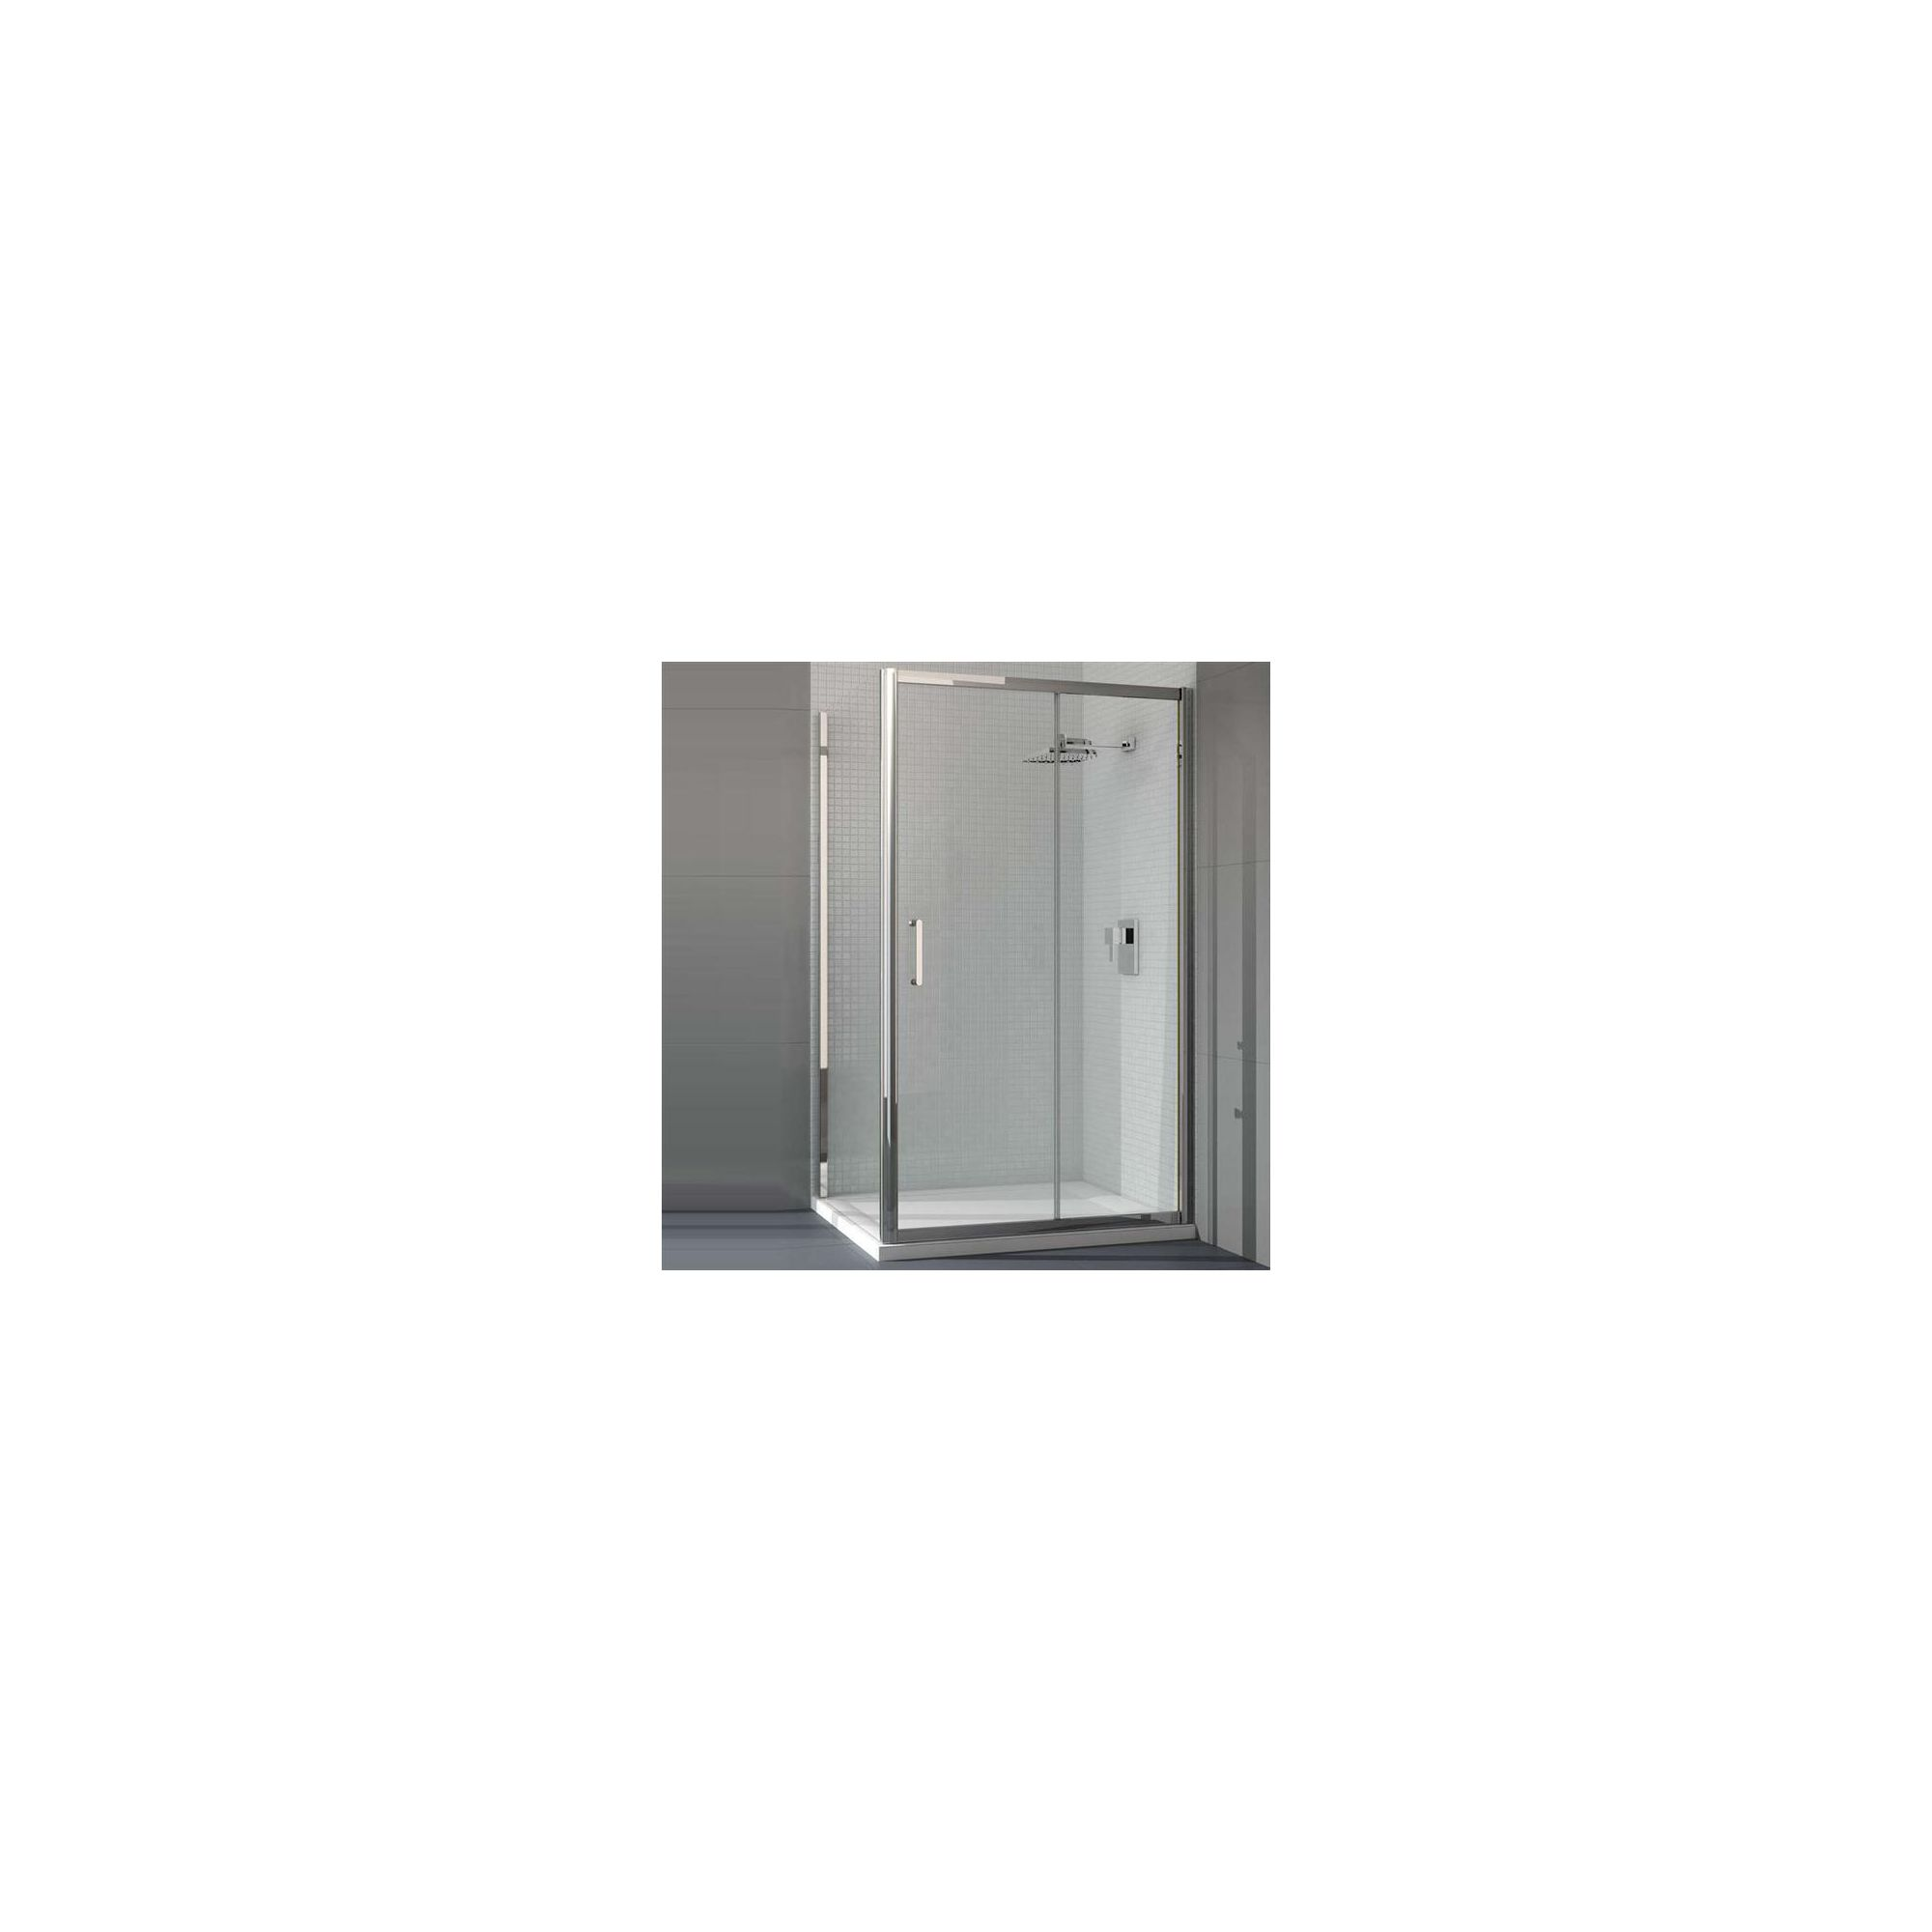 Merlyn Vivid Six Sliding Door Shower Enclosure, 1000mm x 800mm, Low Profile Tray, 6mm Glass at Tesco Direct